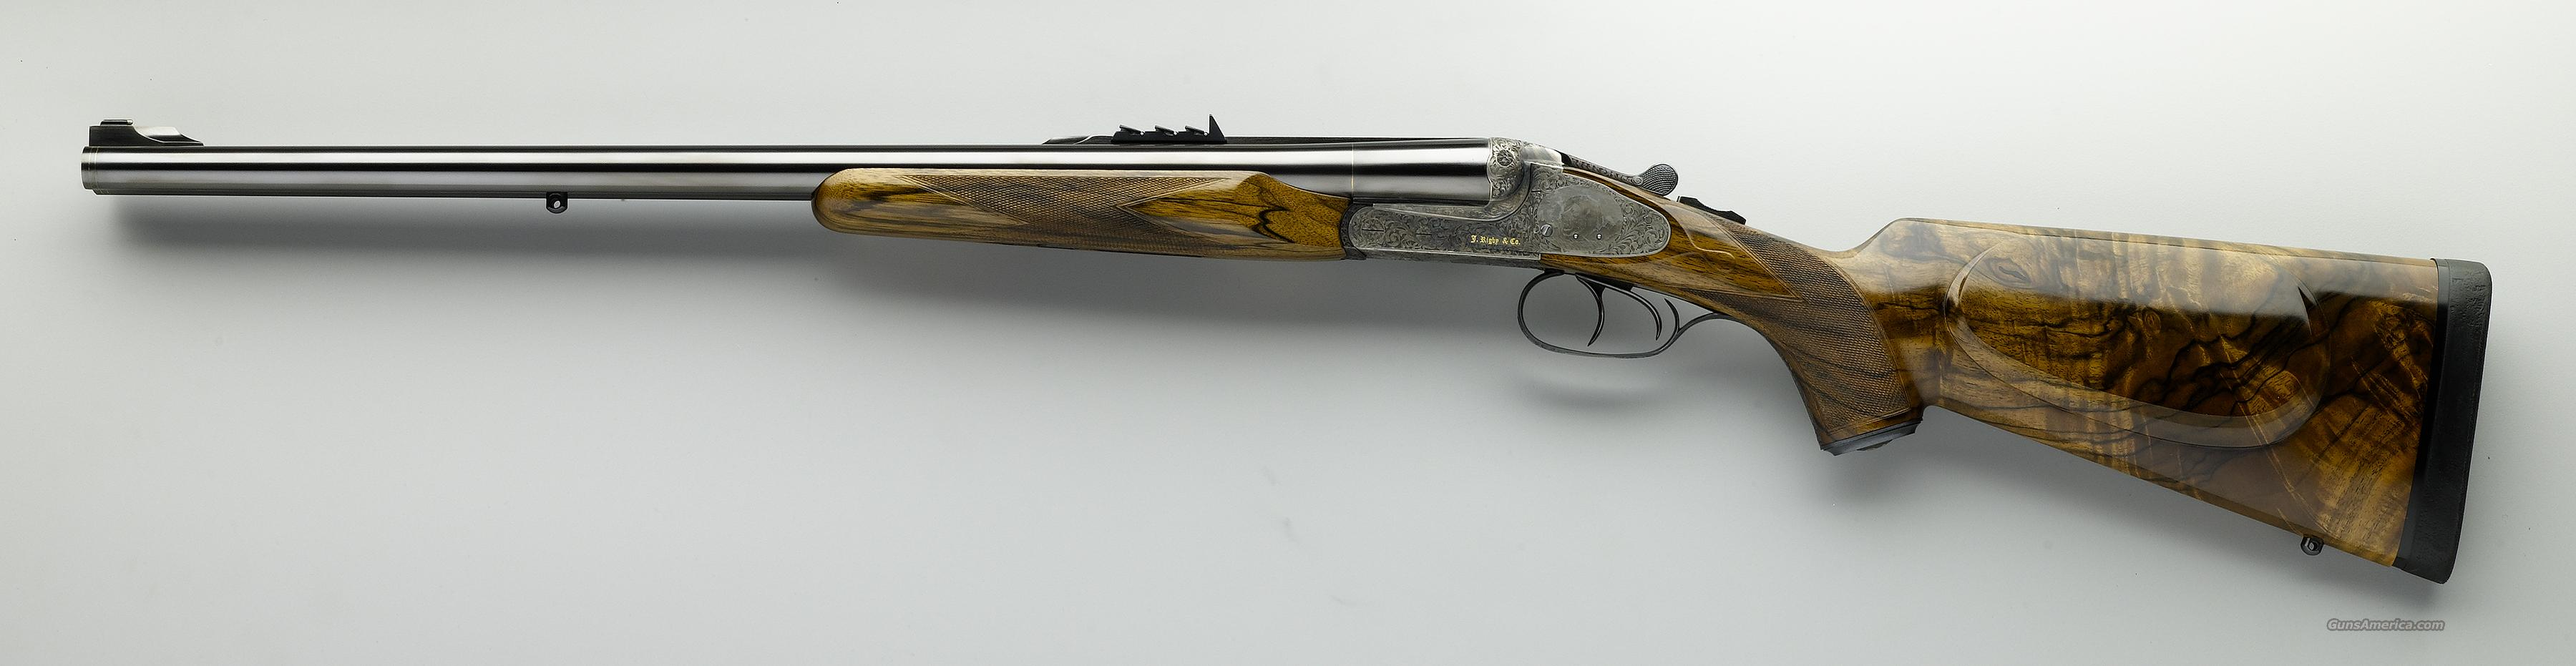 Rigby sidelock 470 NE, engraved by Milani  Guns > Rifles > Double Rifles (Misc.)